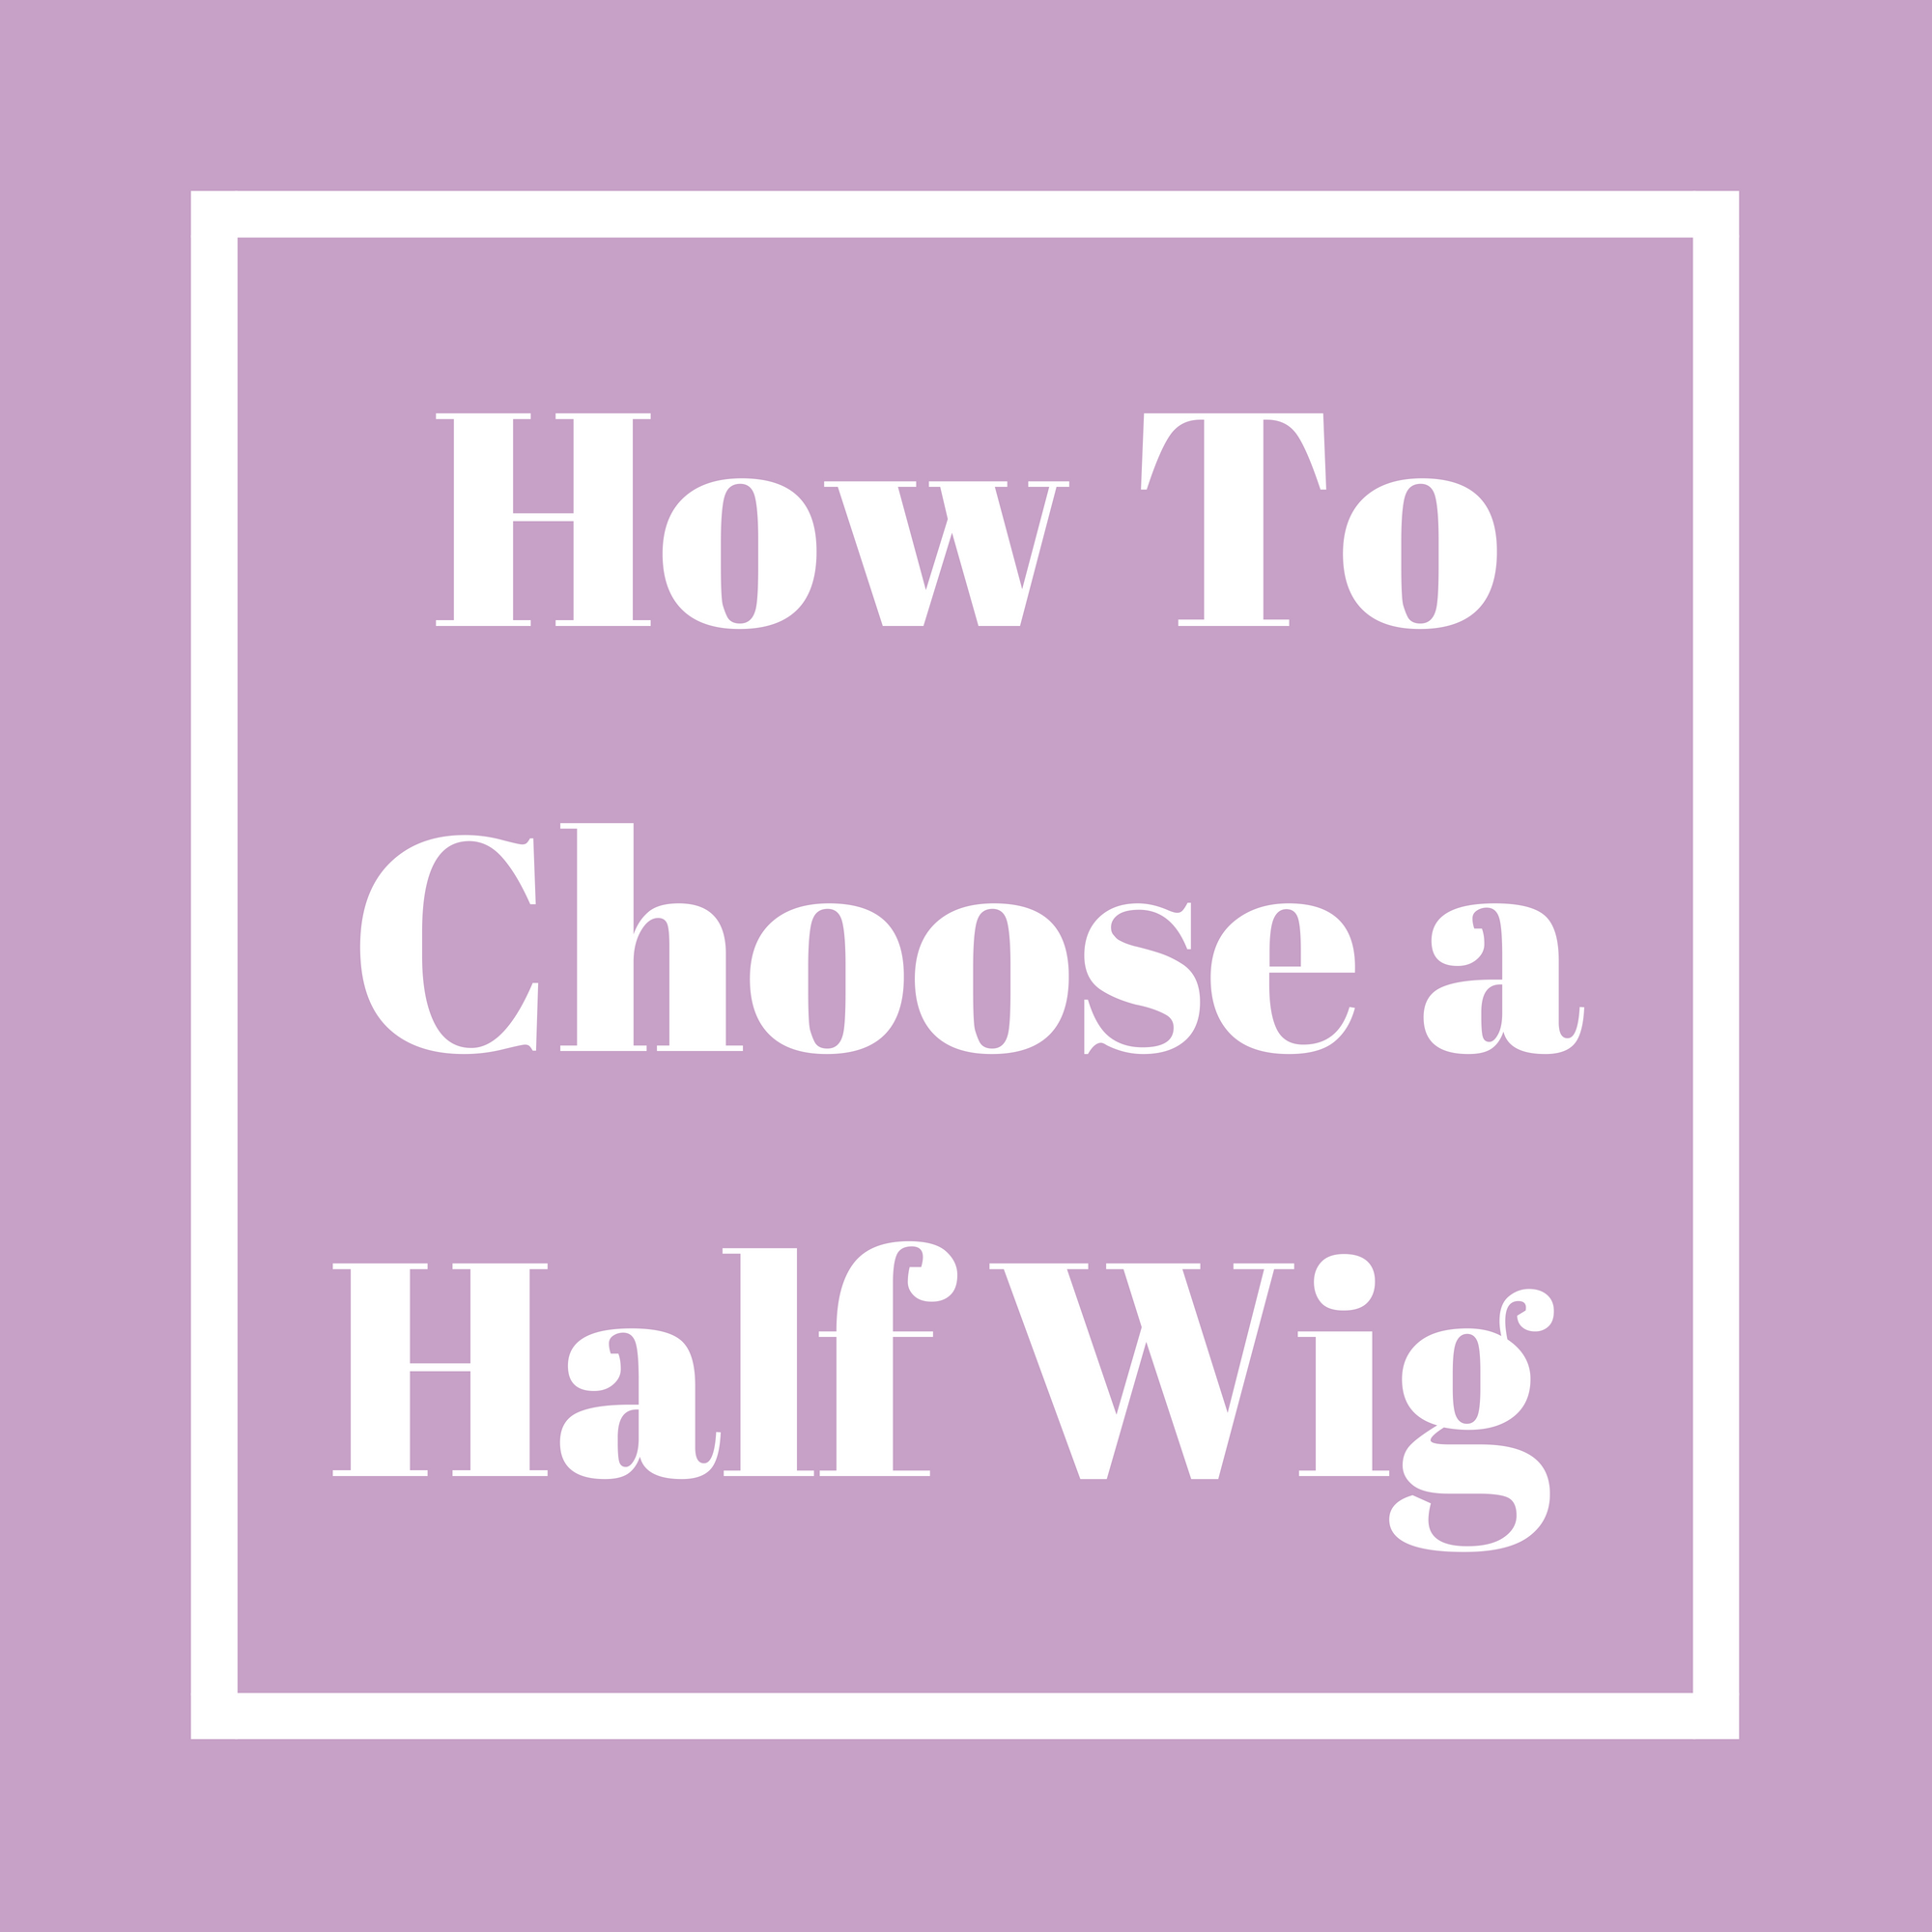 HOW TO CHOOSE A HALF WIG